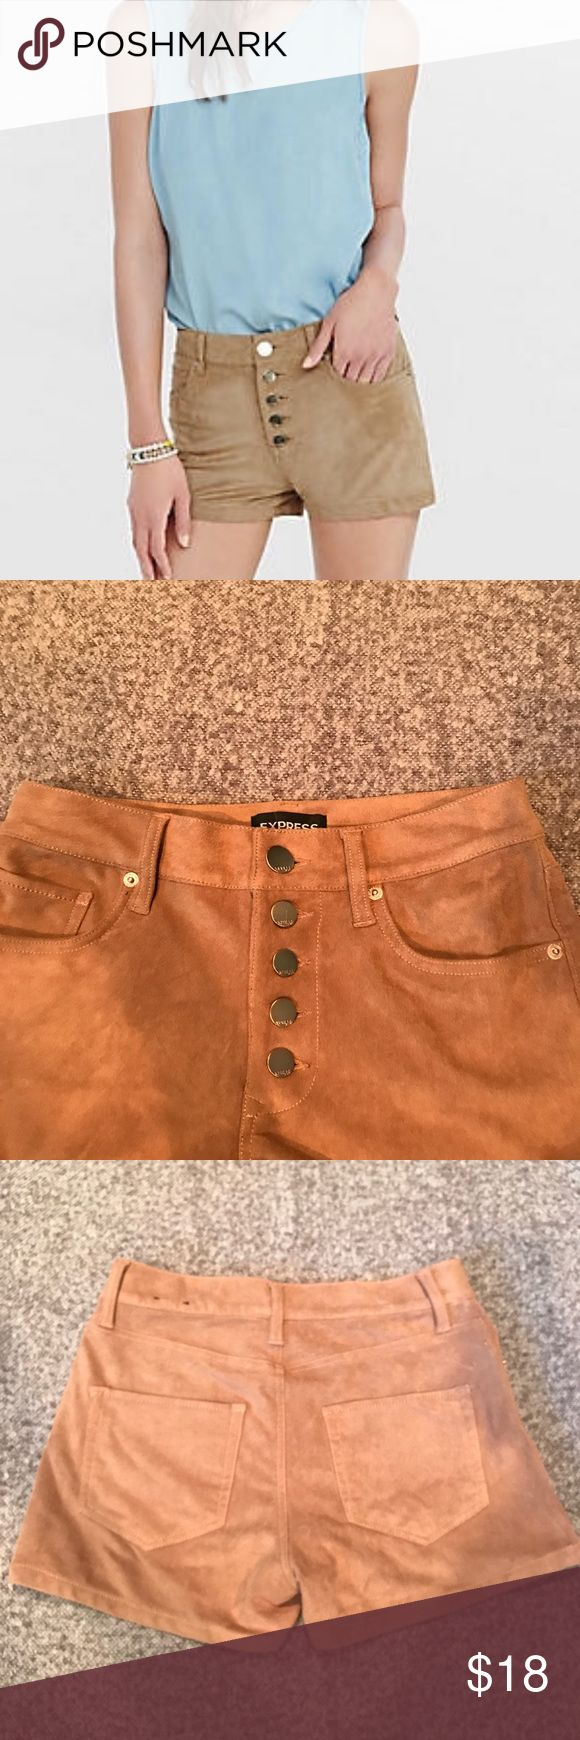 """Express Faux Suede Tan Shorts ✨New without tag!✨  A soft faux suede fabric and an exposed button fly bring boho charm to this flattering mid-rise pair of shorts. They're a perfect partner for peasant blouses, graphic tees and flowing floral tops.  * Mid rise; 2 1/2"""" inseam * Exposed five button fly closure * Slant hand pockets * Stretchy faux suede fabric * Polyster/Spandex Express Shorts"""